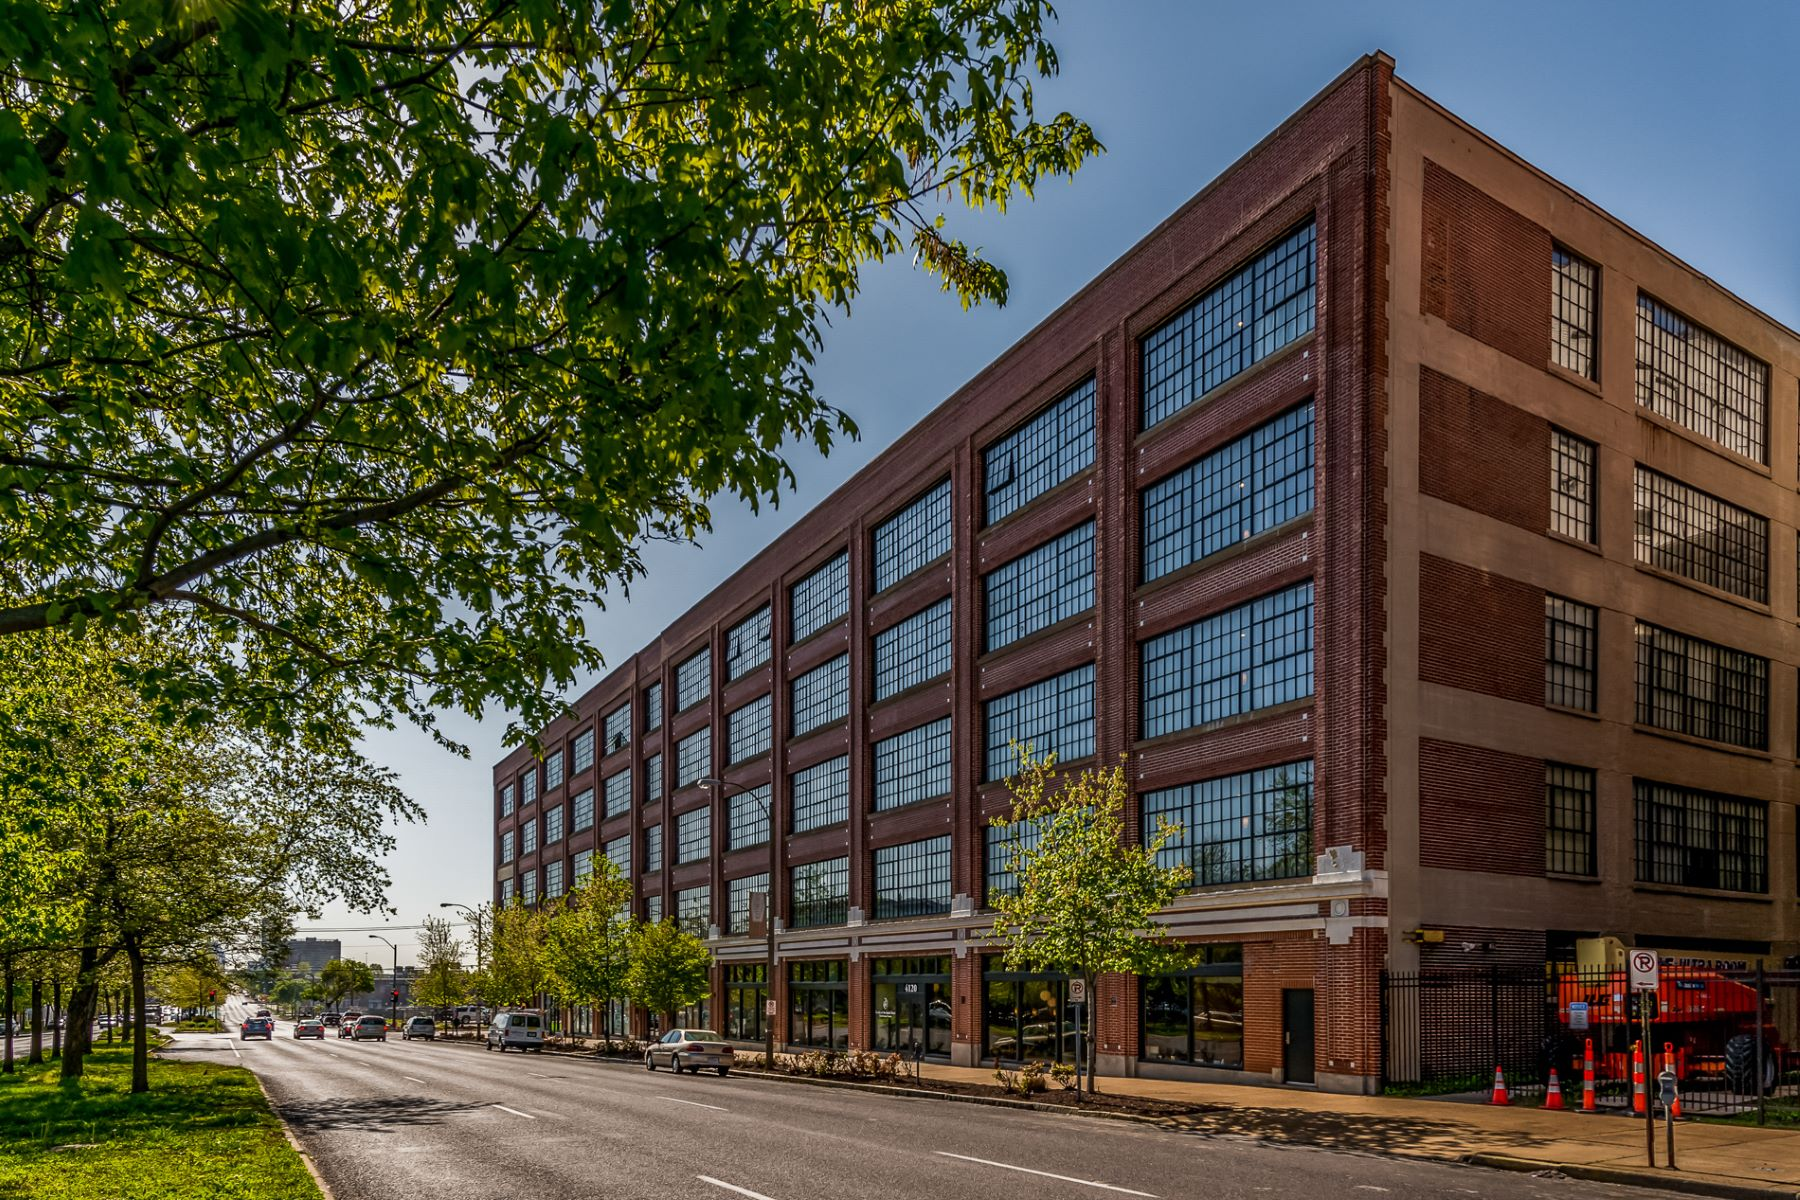 Property for Sale at West End Lofts #311 4100 Forest Park Avenue #311 St. Louis, Missouri 63108 United States